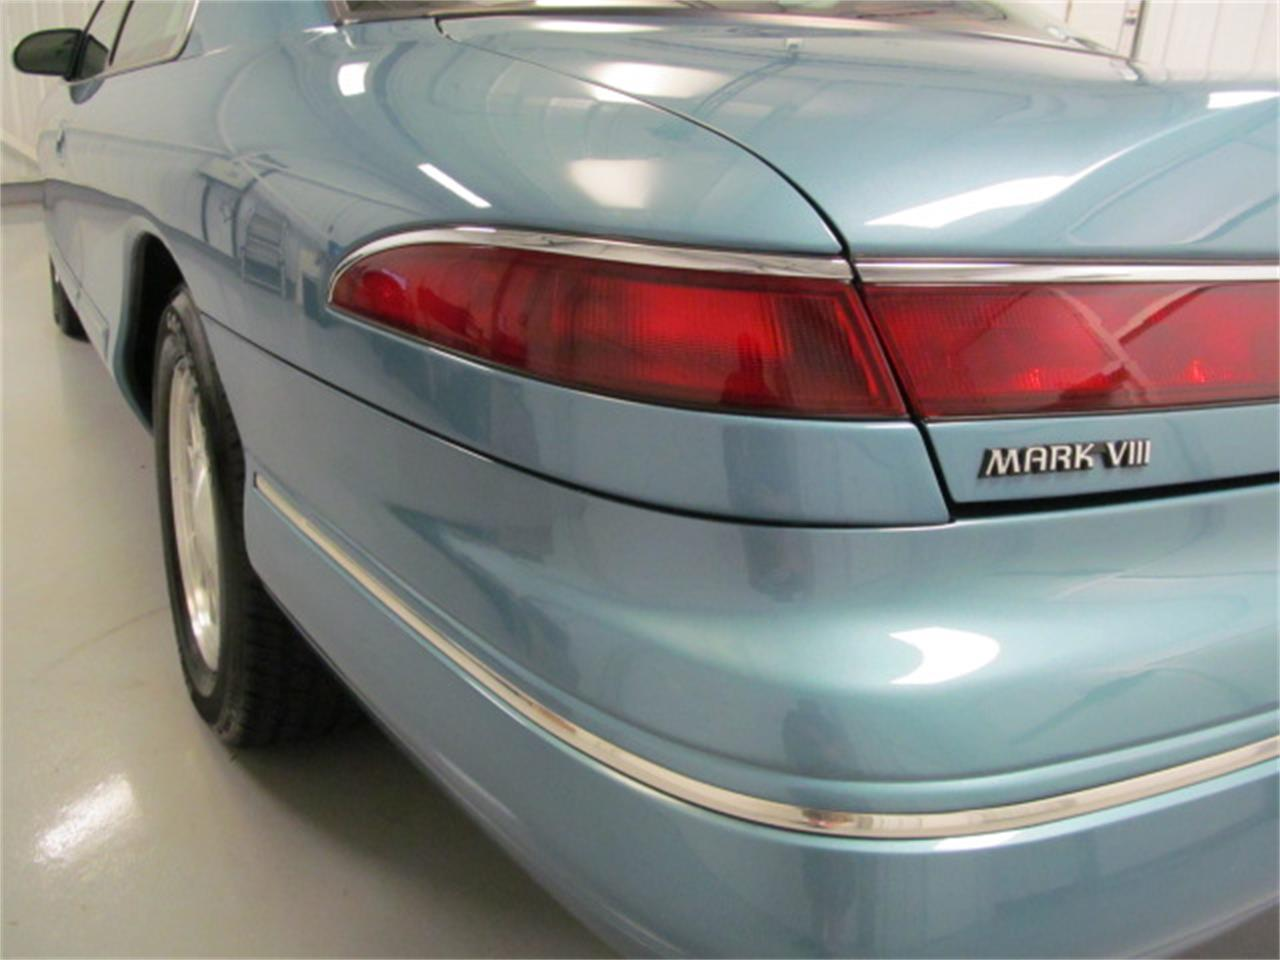 Large Picture of 1993 Lincoln Mark VIII located in Virginia - $9,900.00 Offered by Duncan Imports & Classic Cars - JL9Z